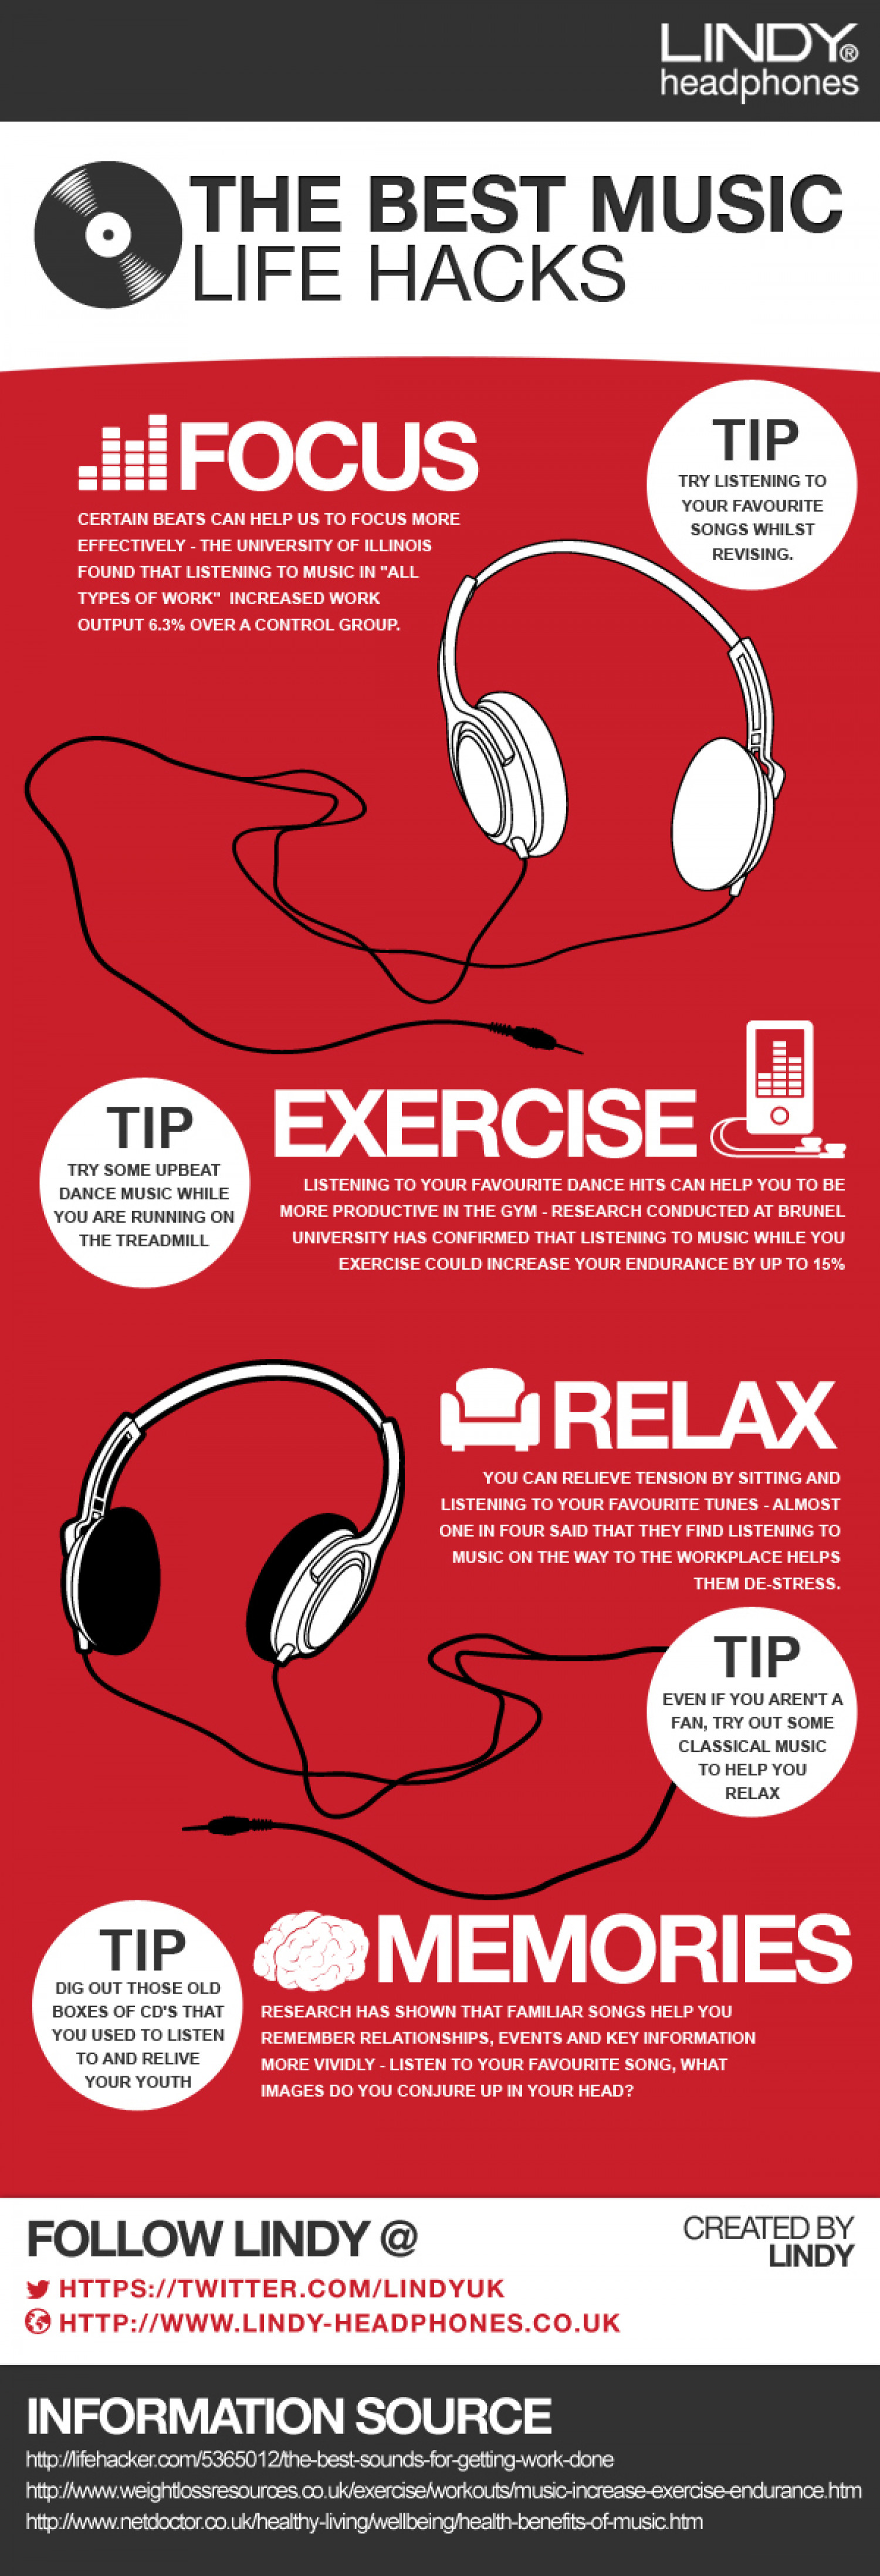 The Best Music Life Hacks Infographic